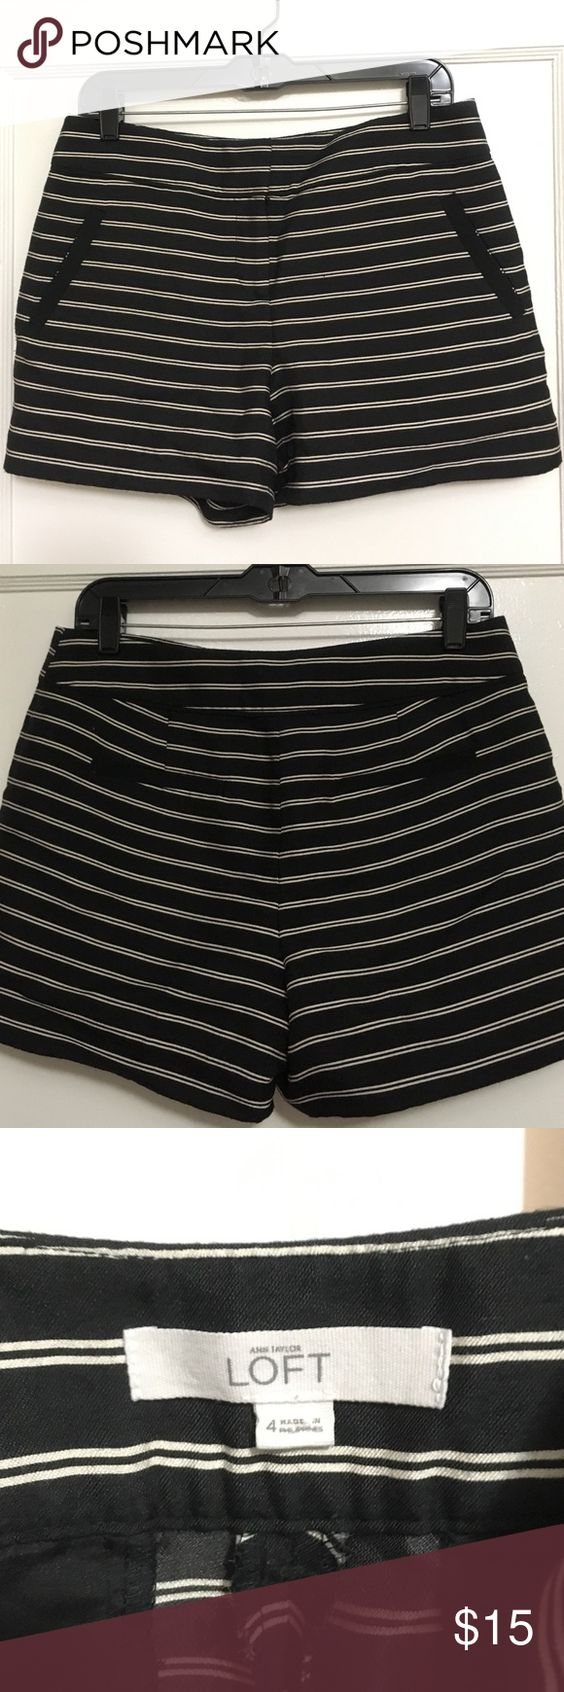 Striped Shorts Black & white striped shorts with black-lines pockets. Very sleek and comfortable- can dress up or down. LOFT Shorts